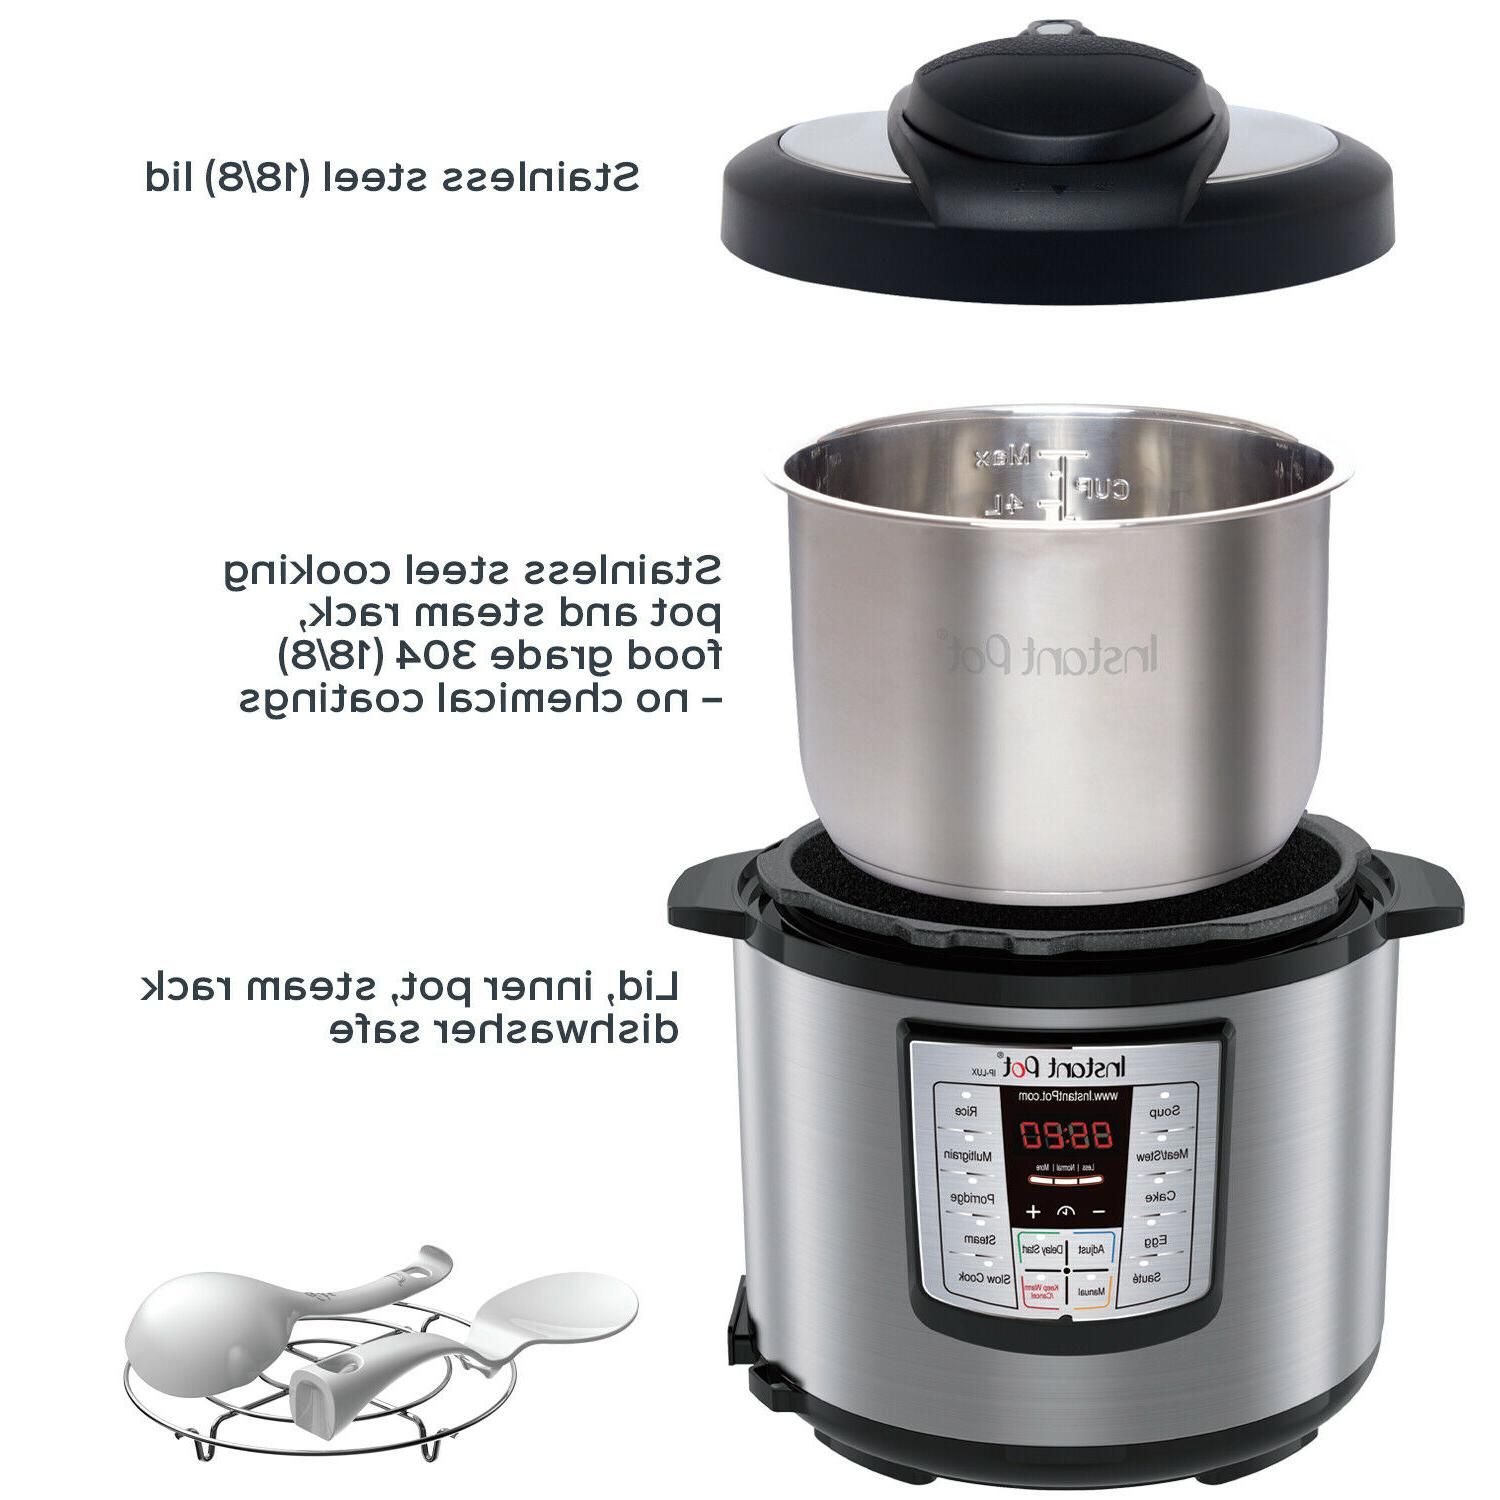 Instant 6 6-in-1 Multi-Use Programmable Cooker, Co